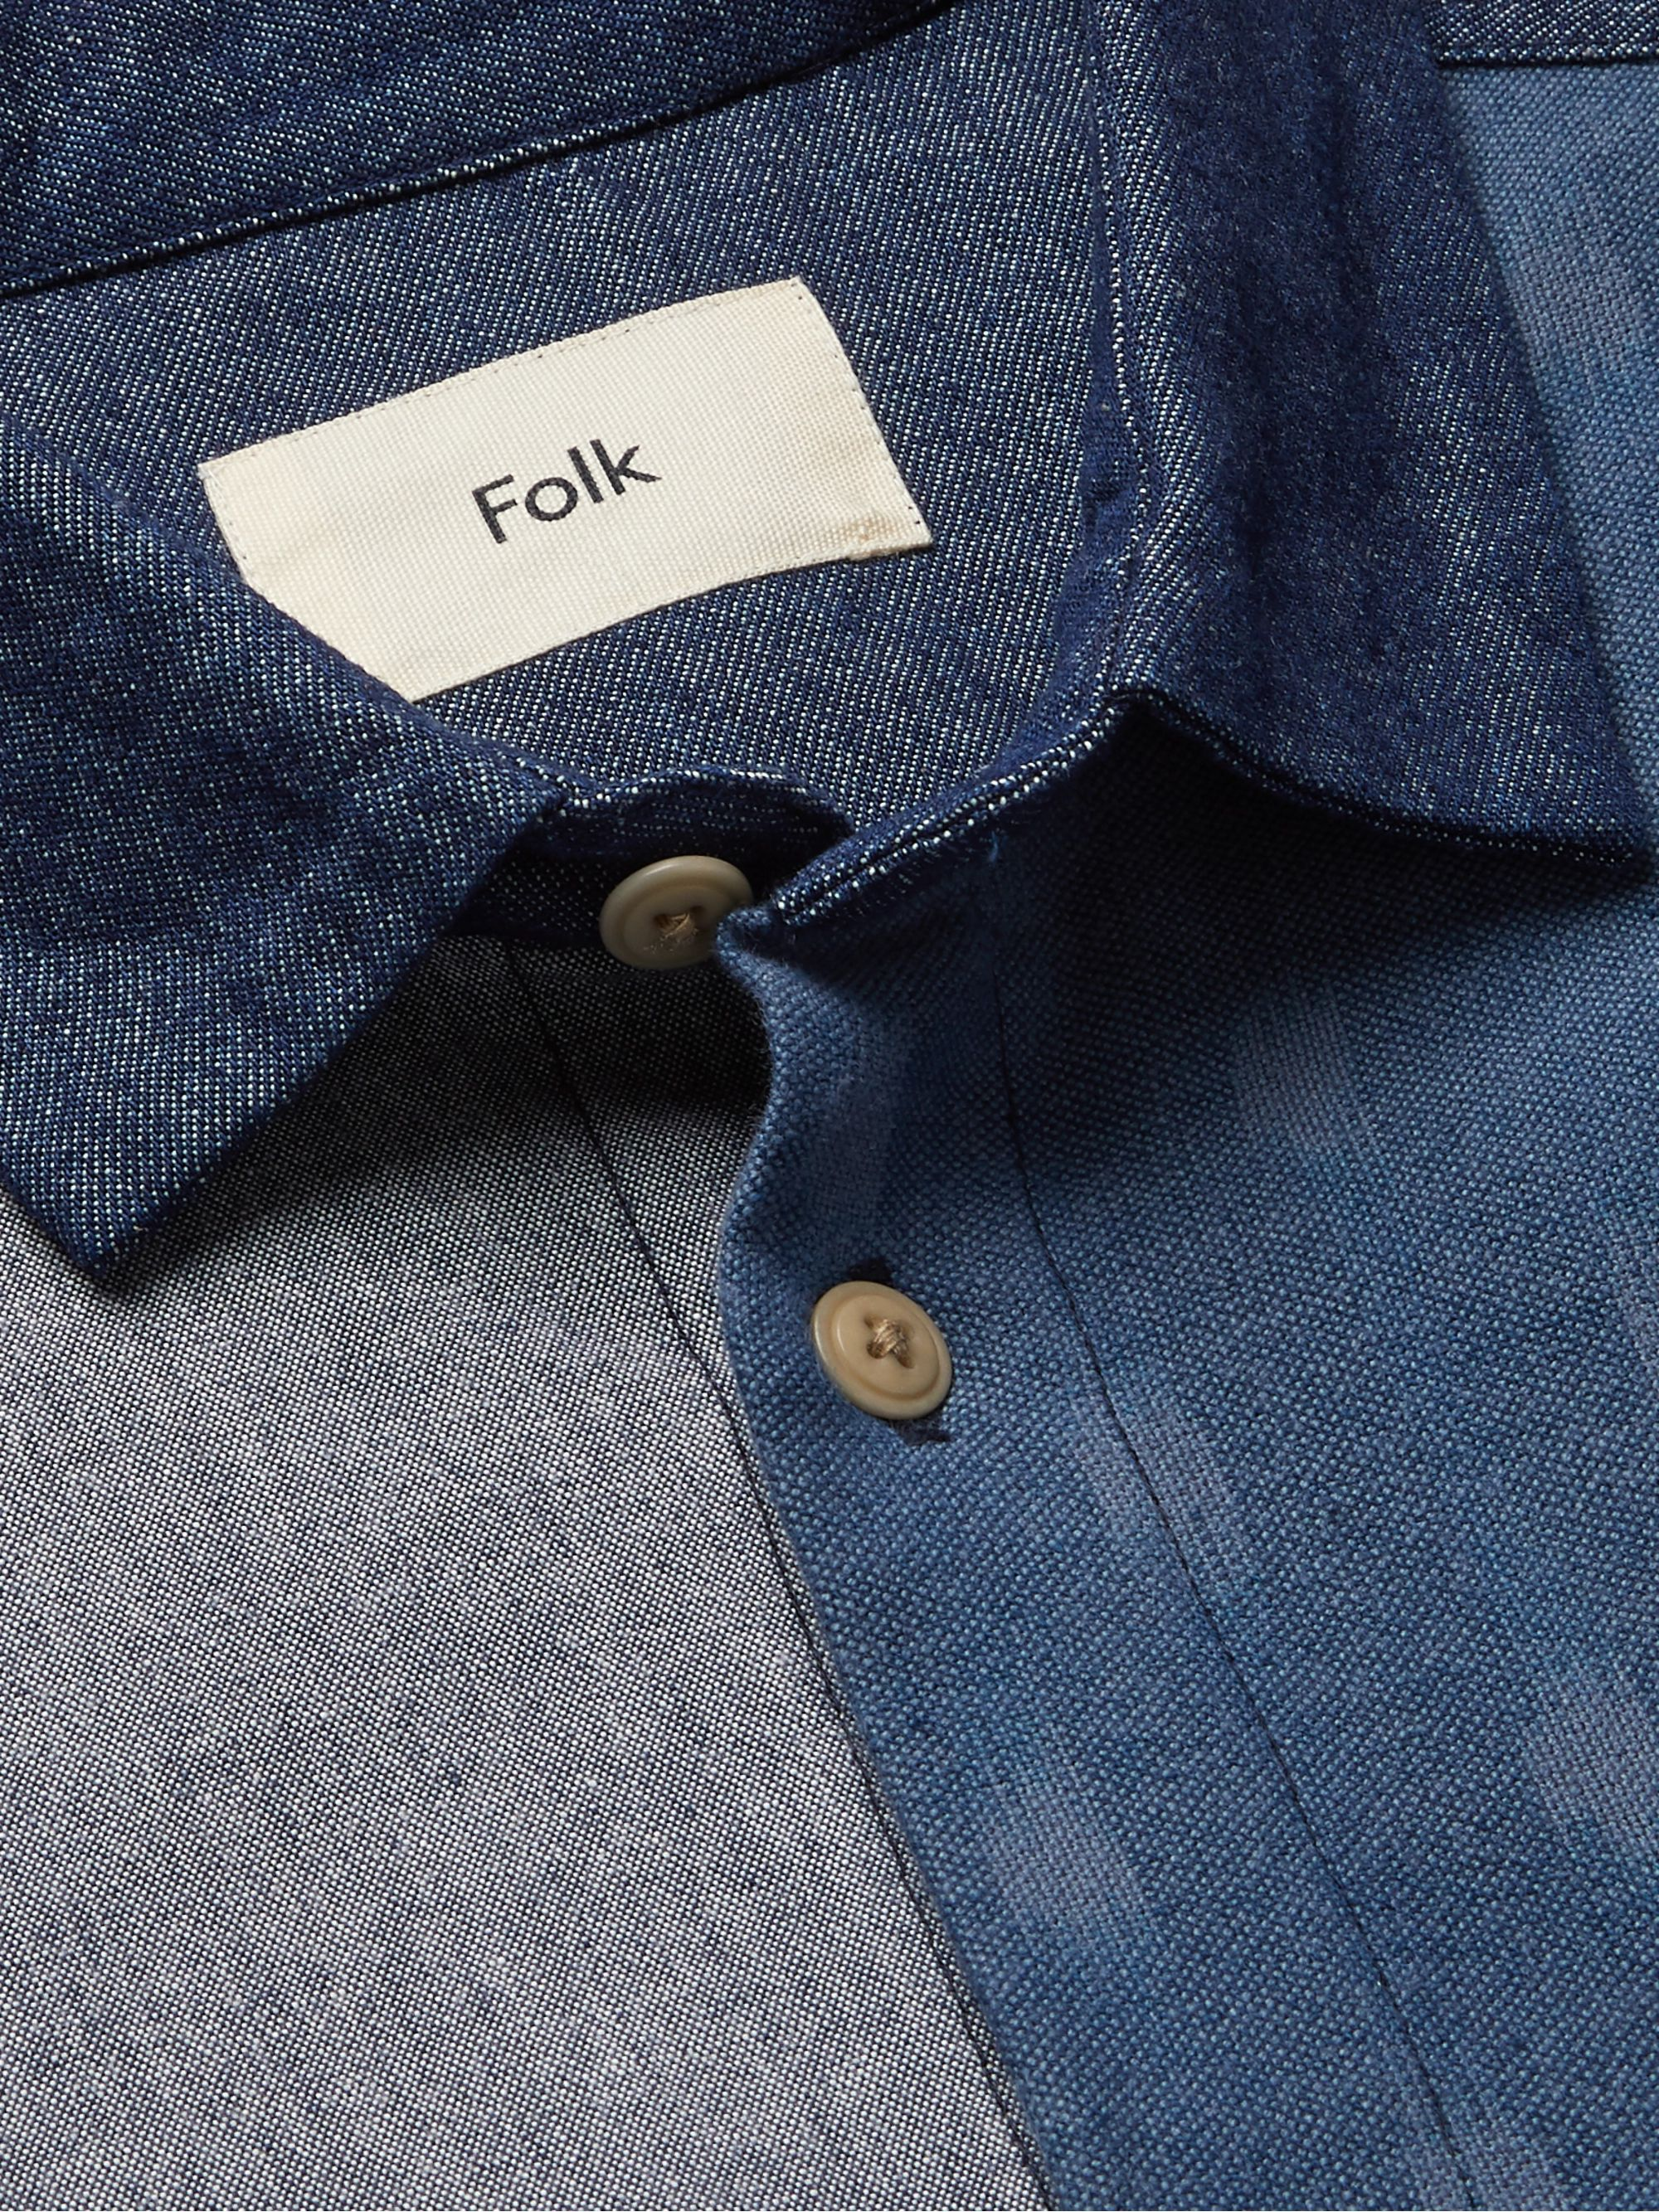 Folk Panelled Cotton Shirt